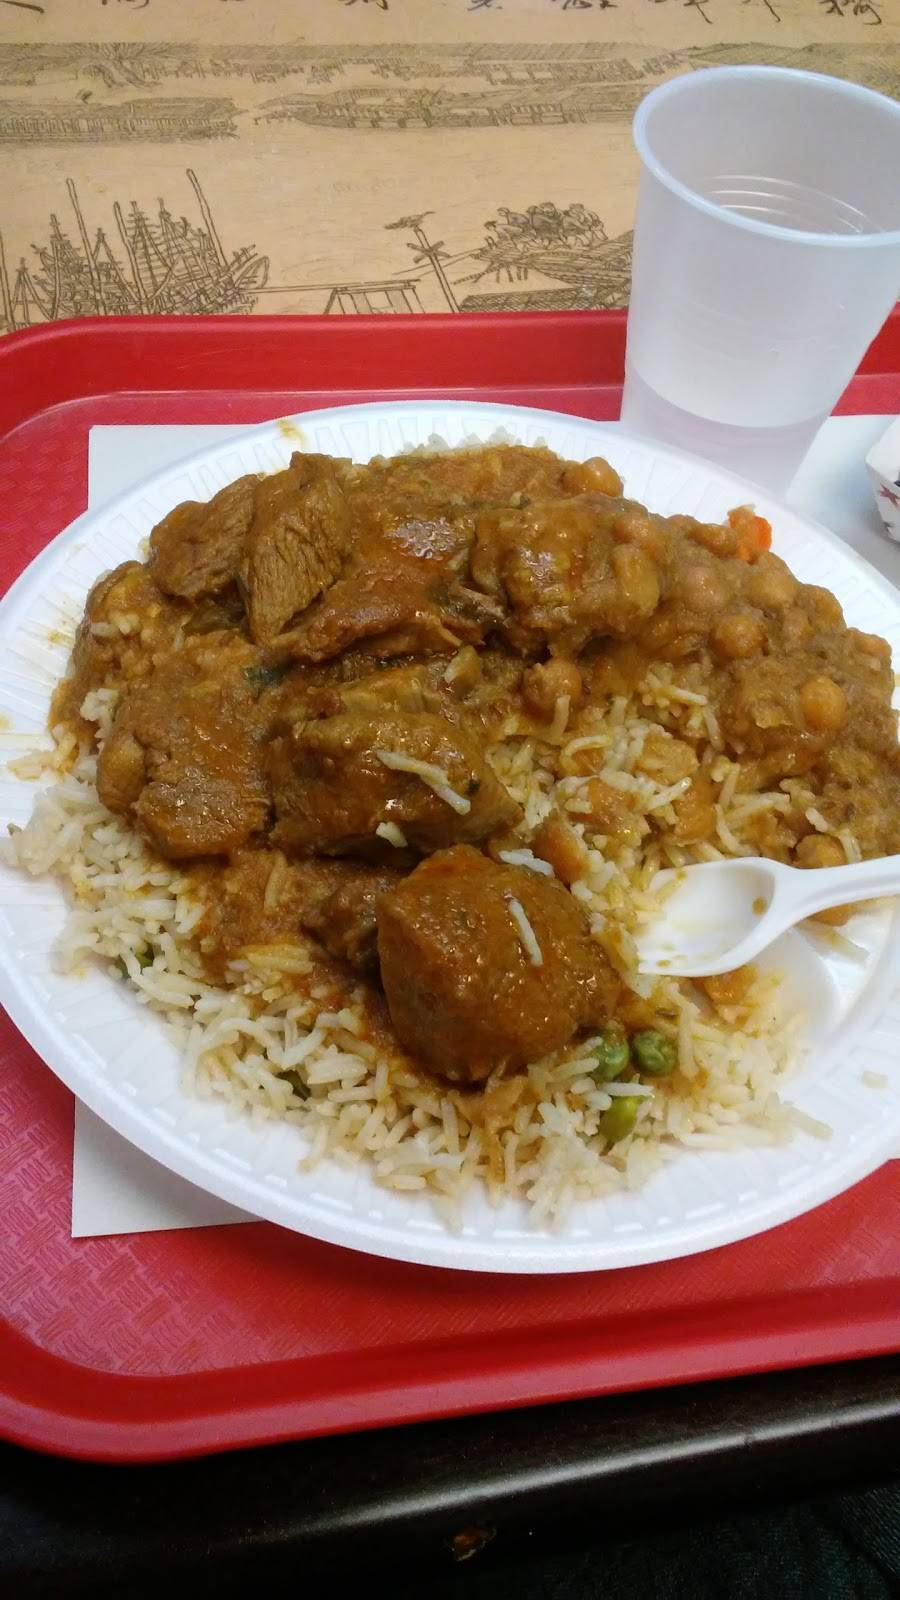 Indo Pak Halal | meal takeaway | 2173 2nd Ave #2909, New York, NY 10029, USA | 2129878150 OR +1 212-987-8150